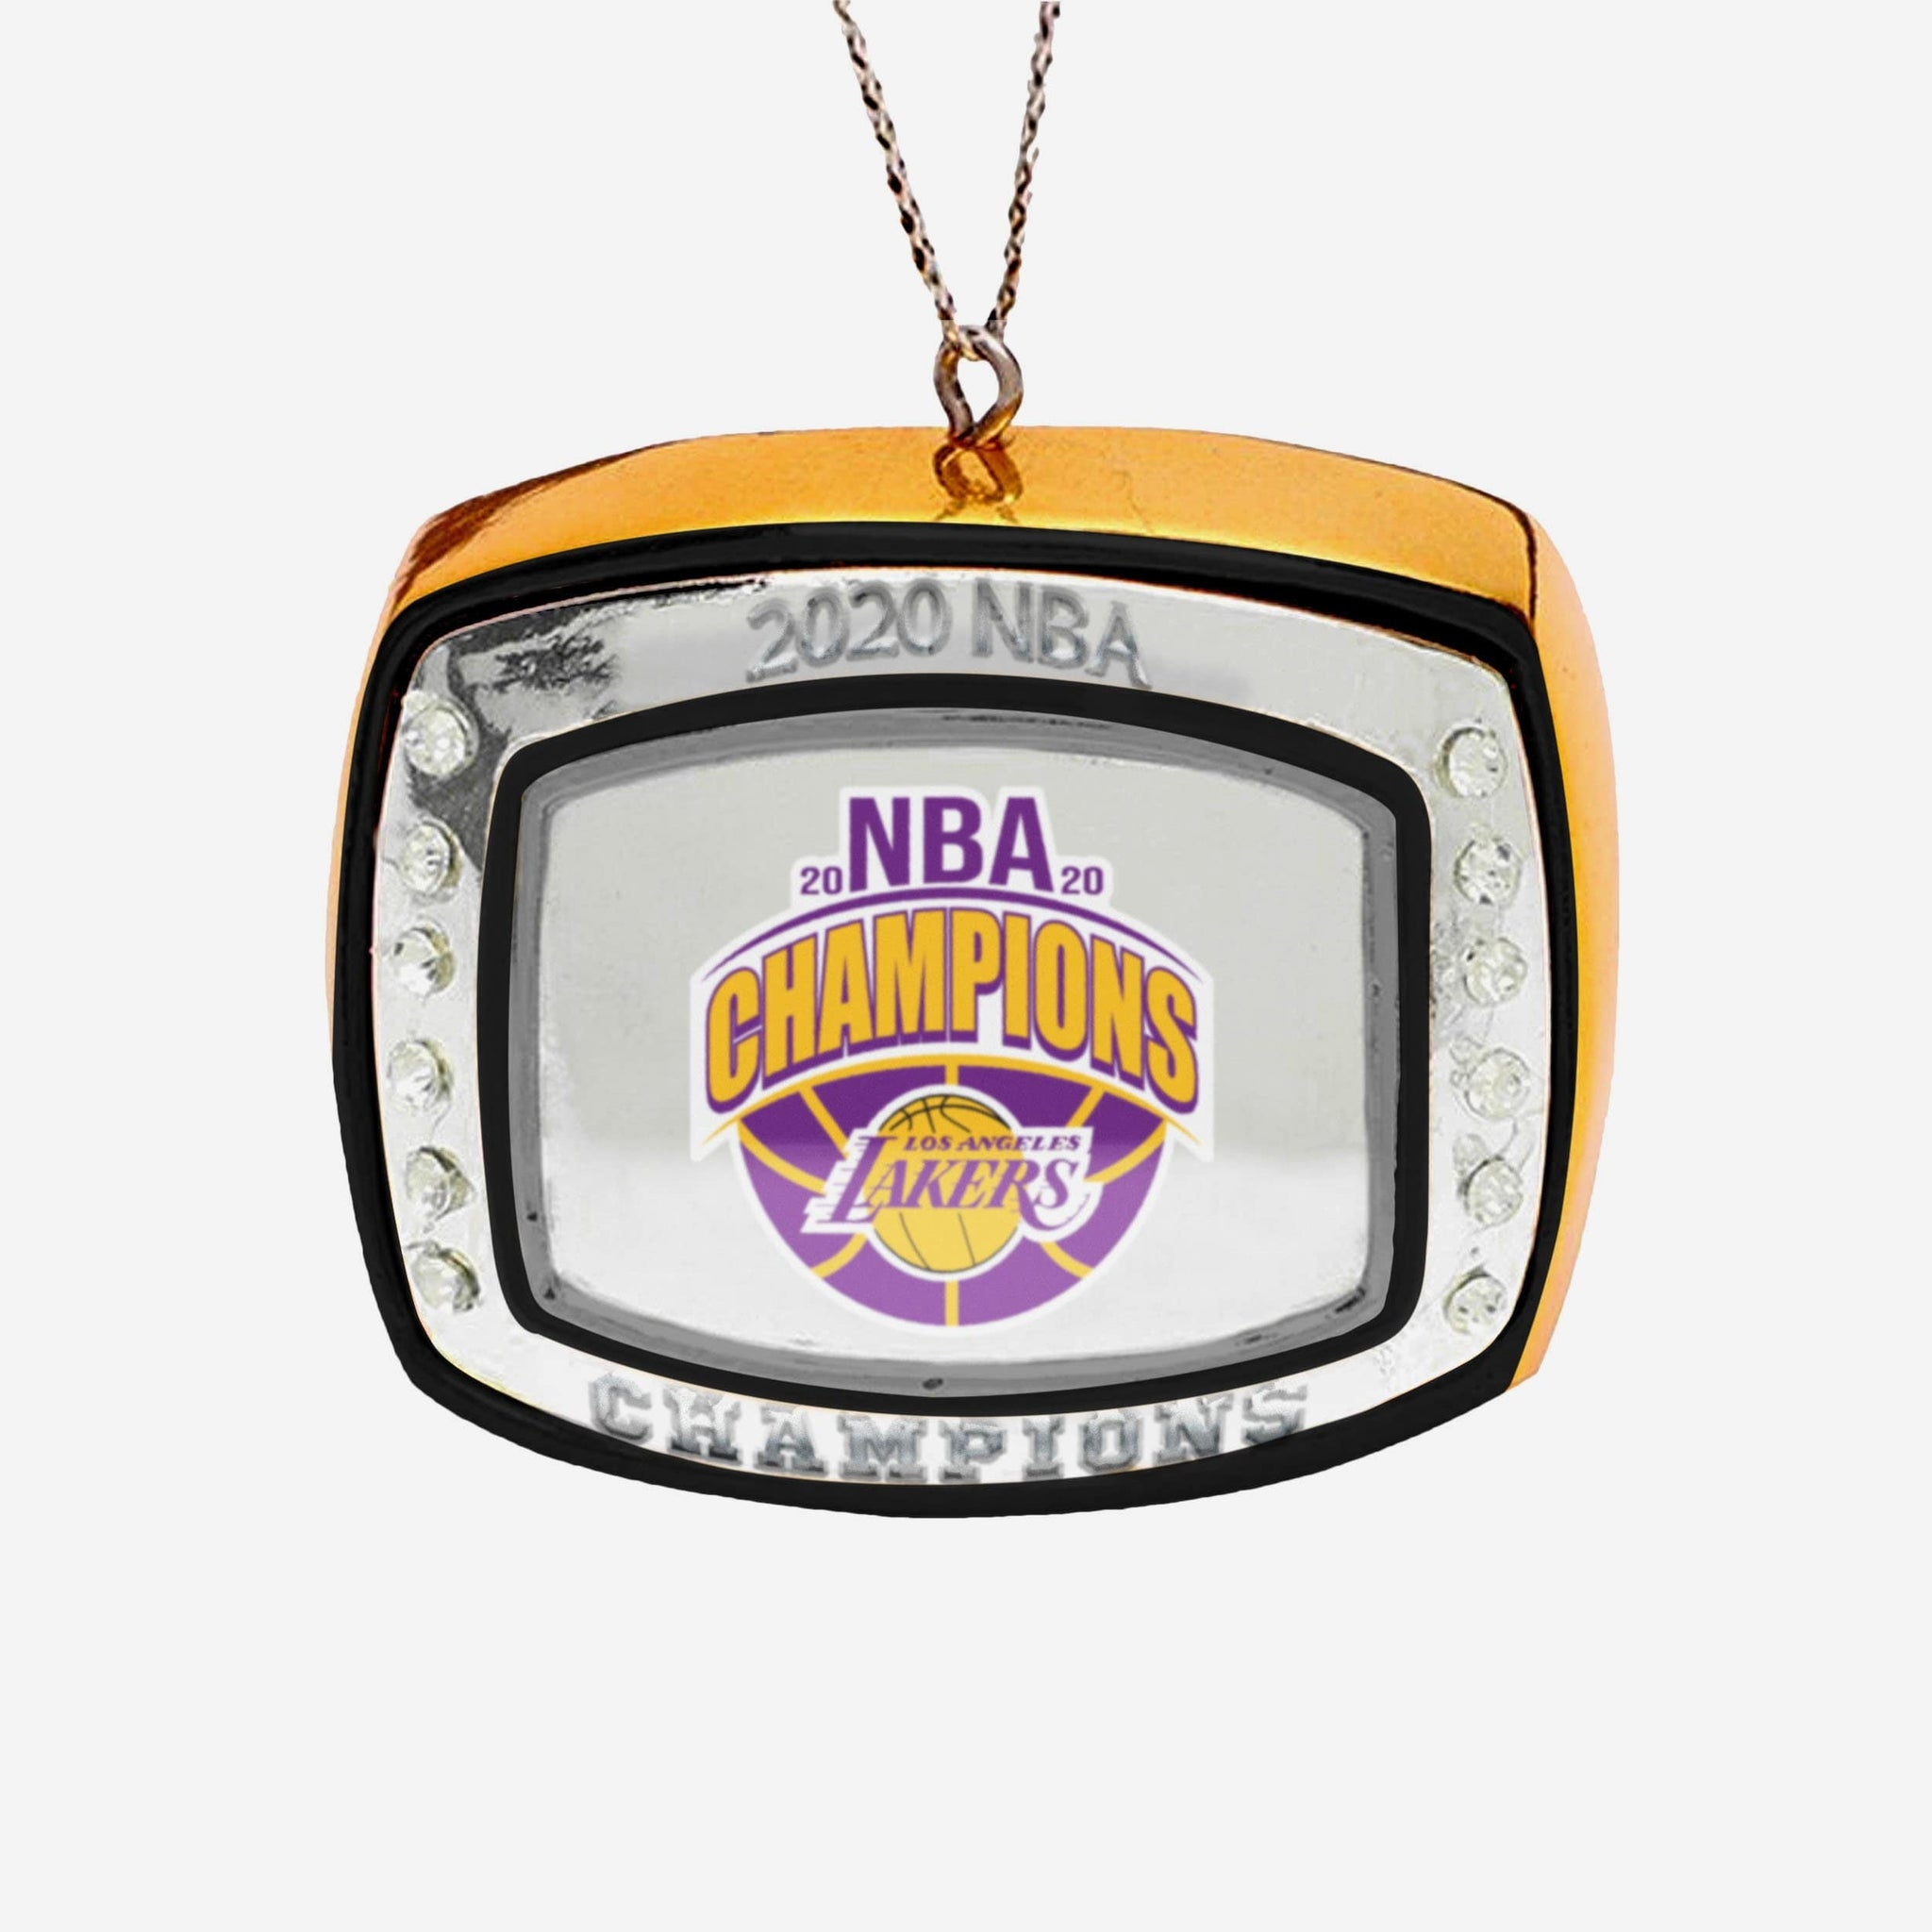 Los Angeles Lakers 2020 Nba Champions Ring Ornament Foco